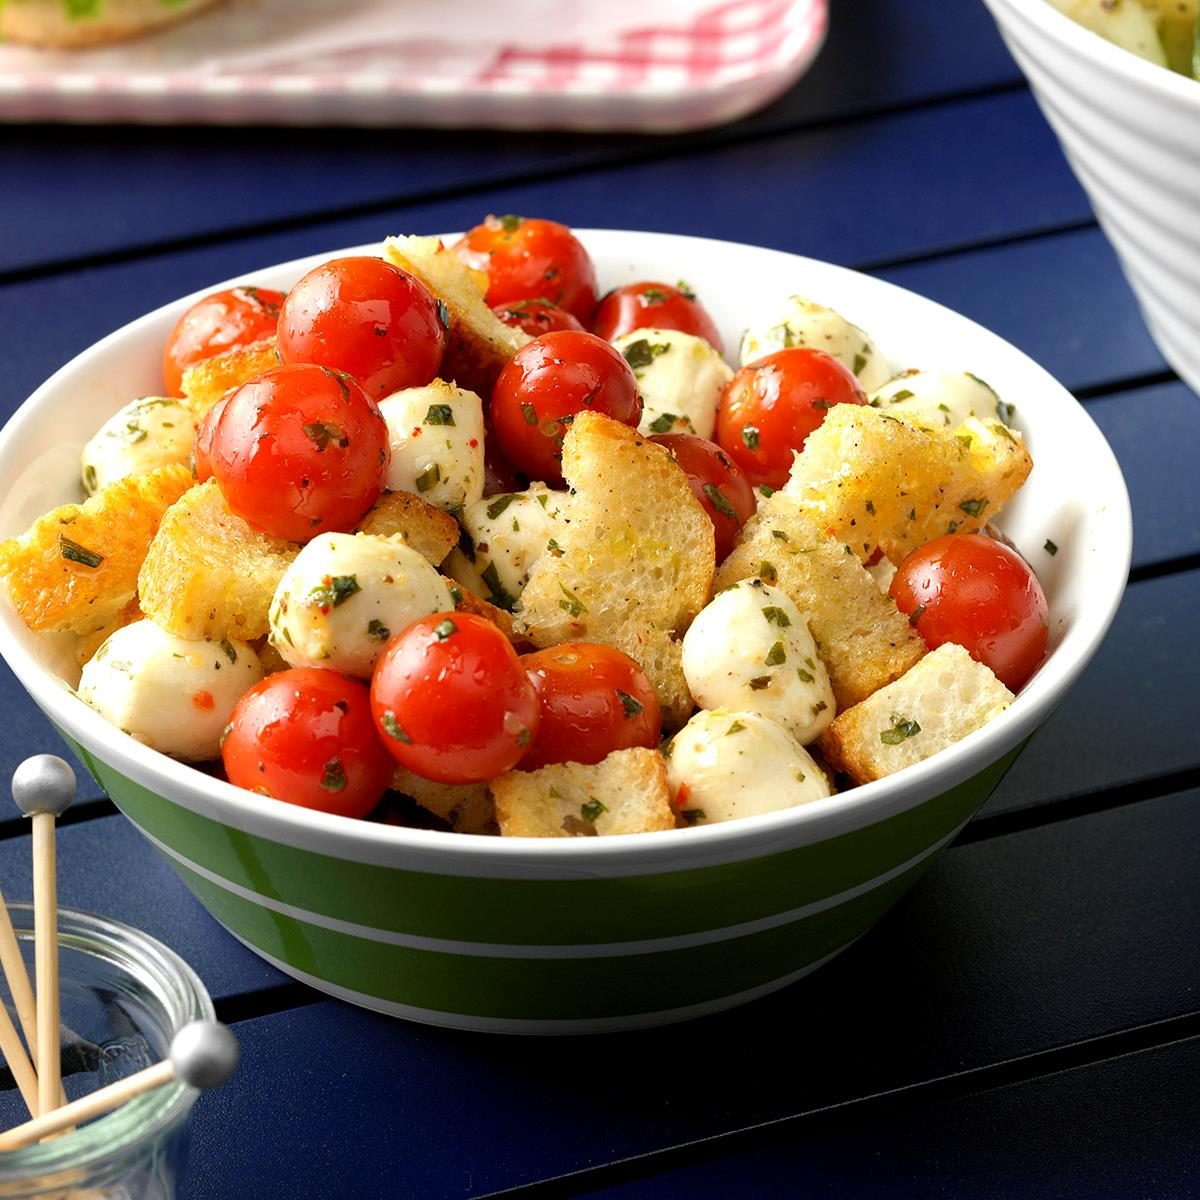 Marinated Mozzarella & Tomato Appetizers